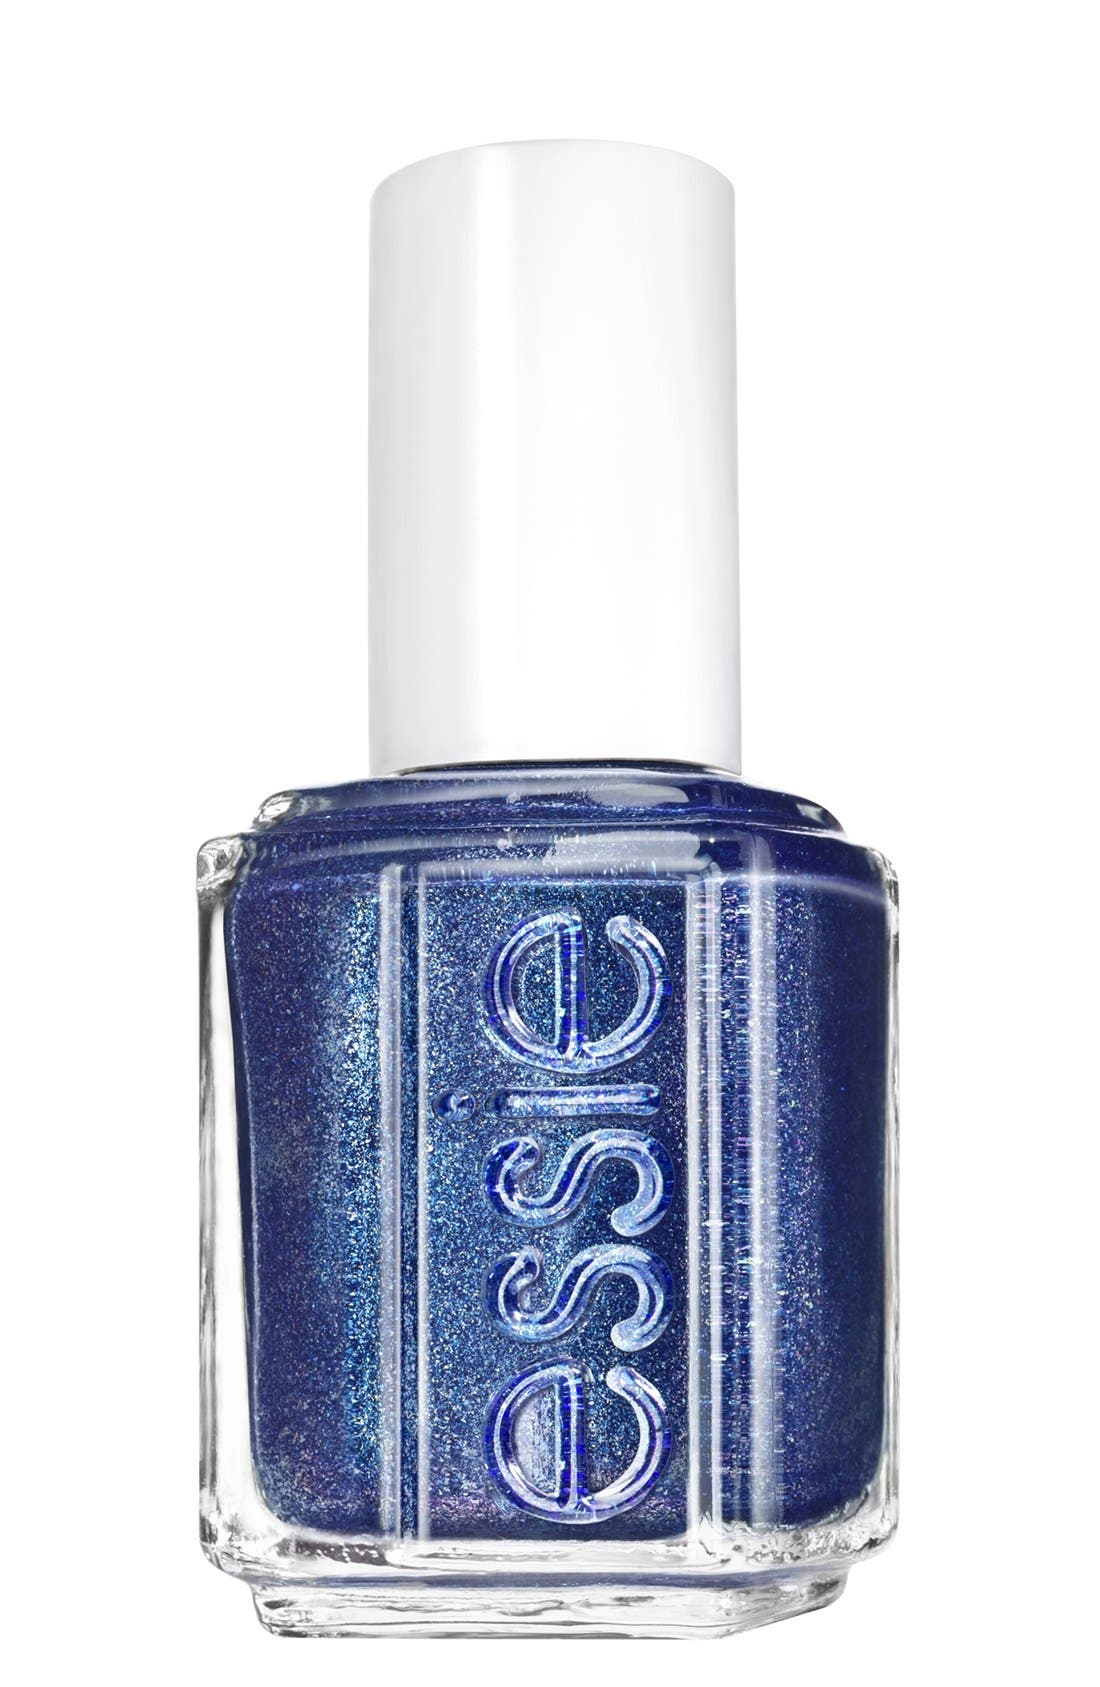 essie® 'Encrusted' Nail Polish